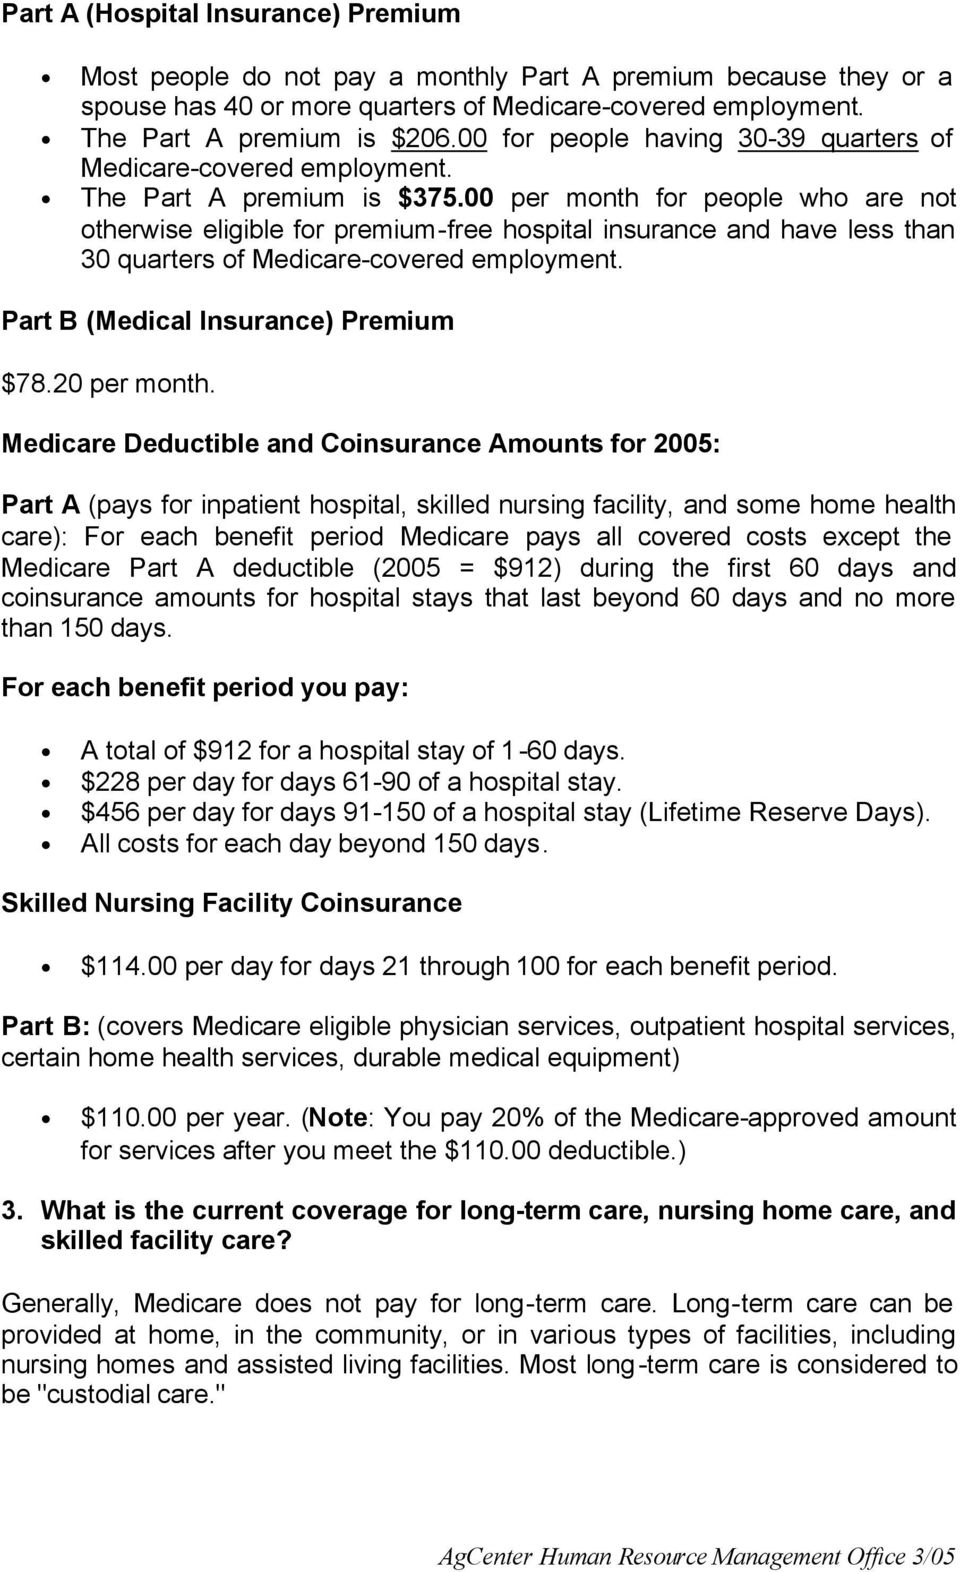 00 per month for people who are not otherwise eligible for premium-free hospital insurance and have less than 30 quarters of Medicare-covered employment. Part B (Medical Insurance) Premium $78.